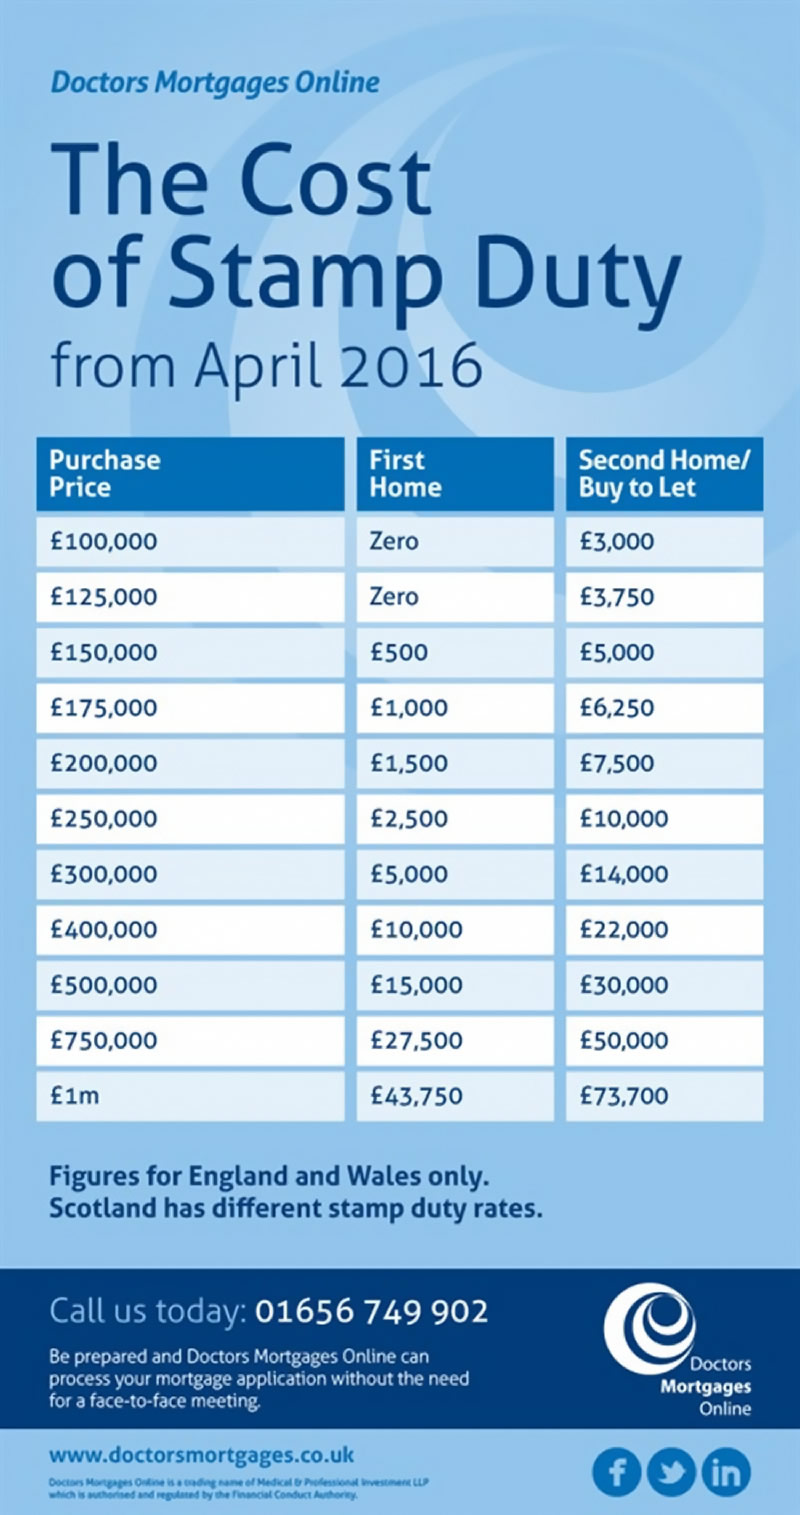 The Cost of Stamp Duty from April 2016